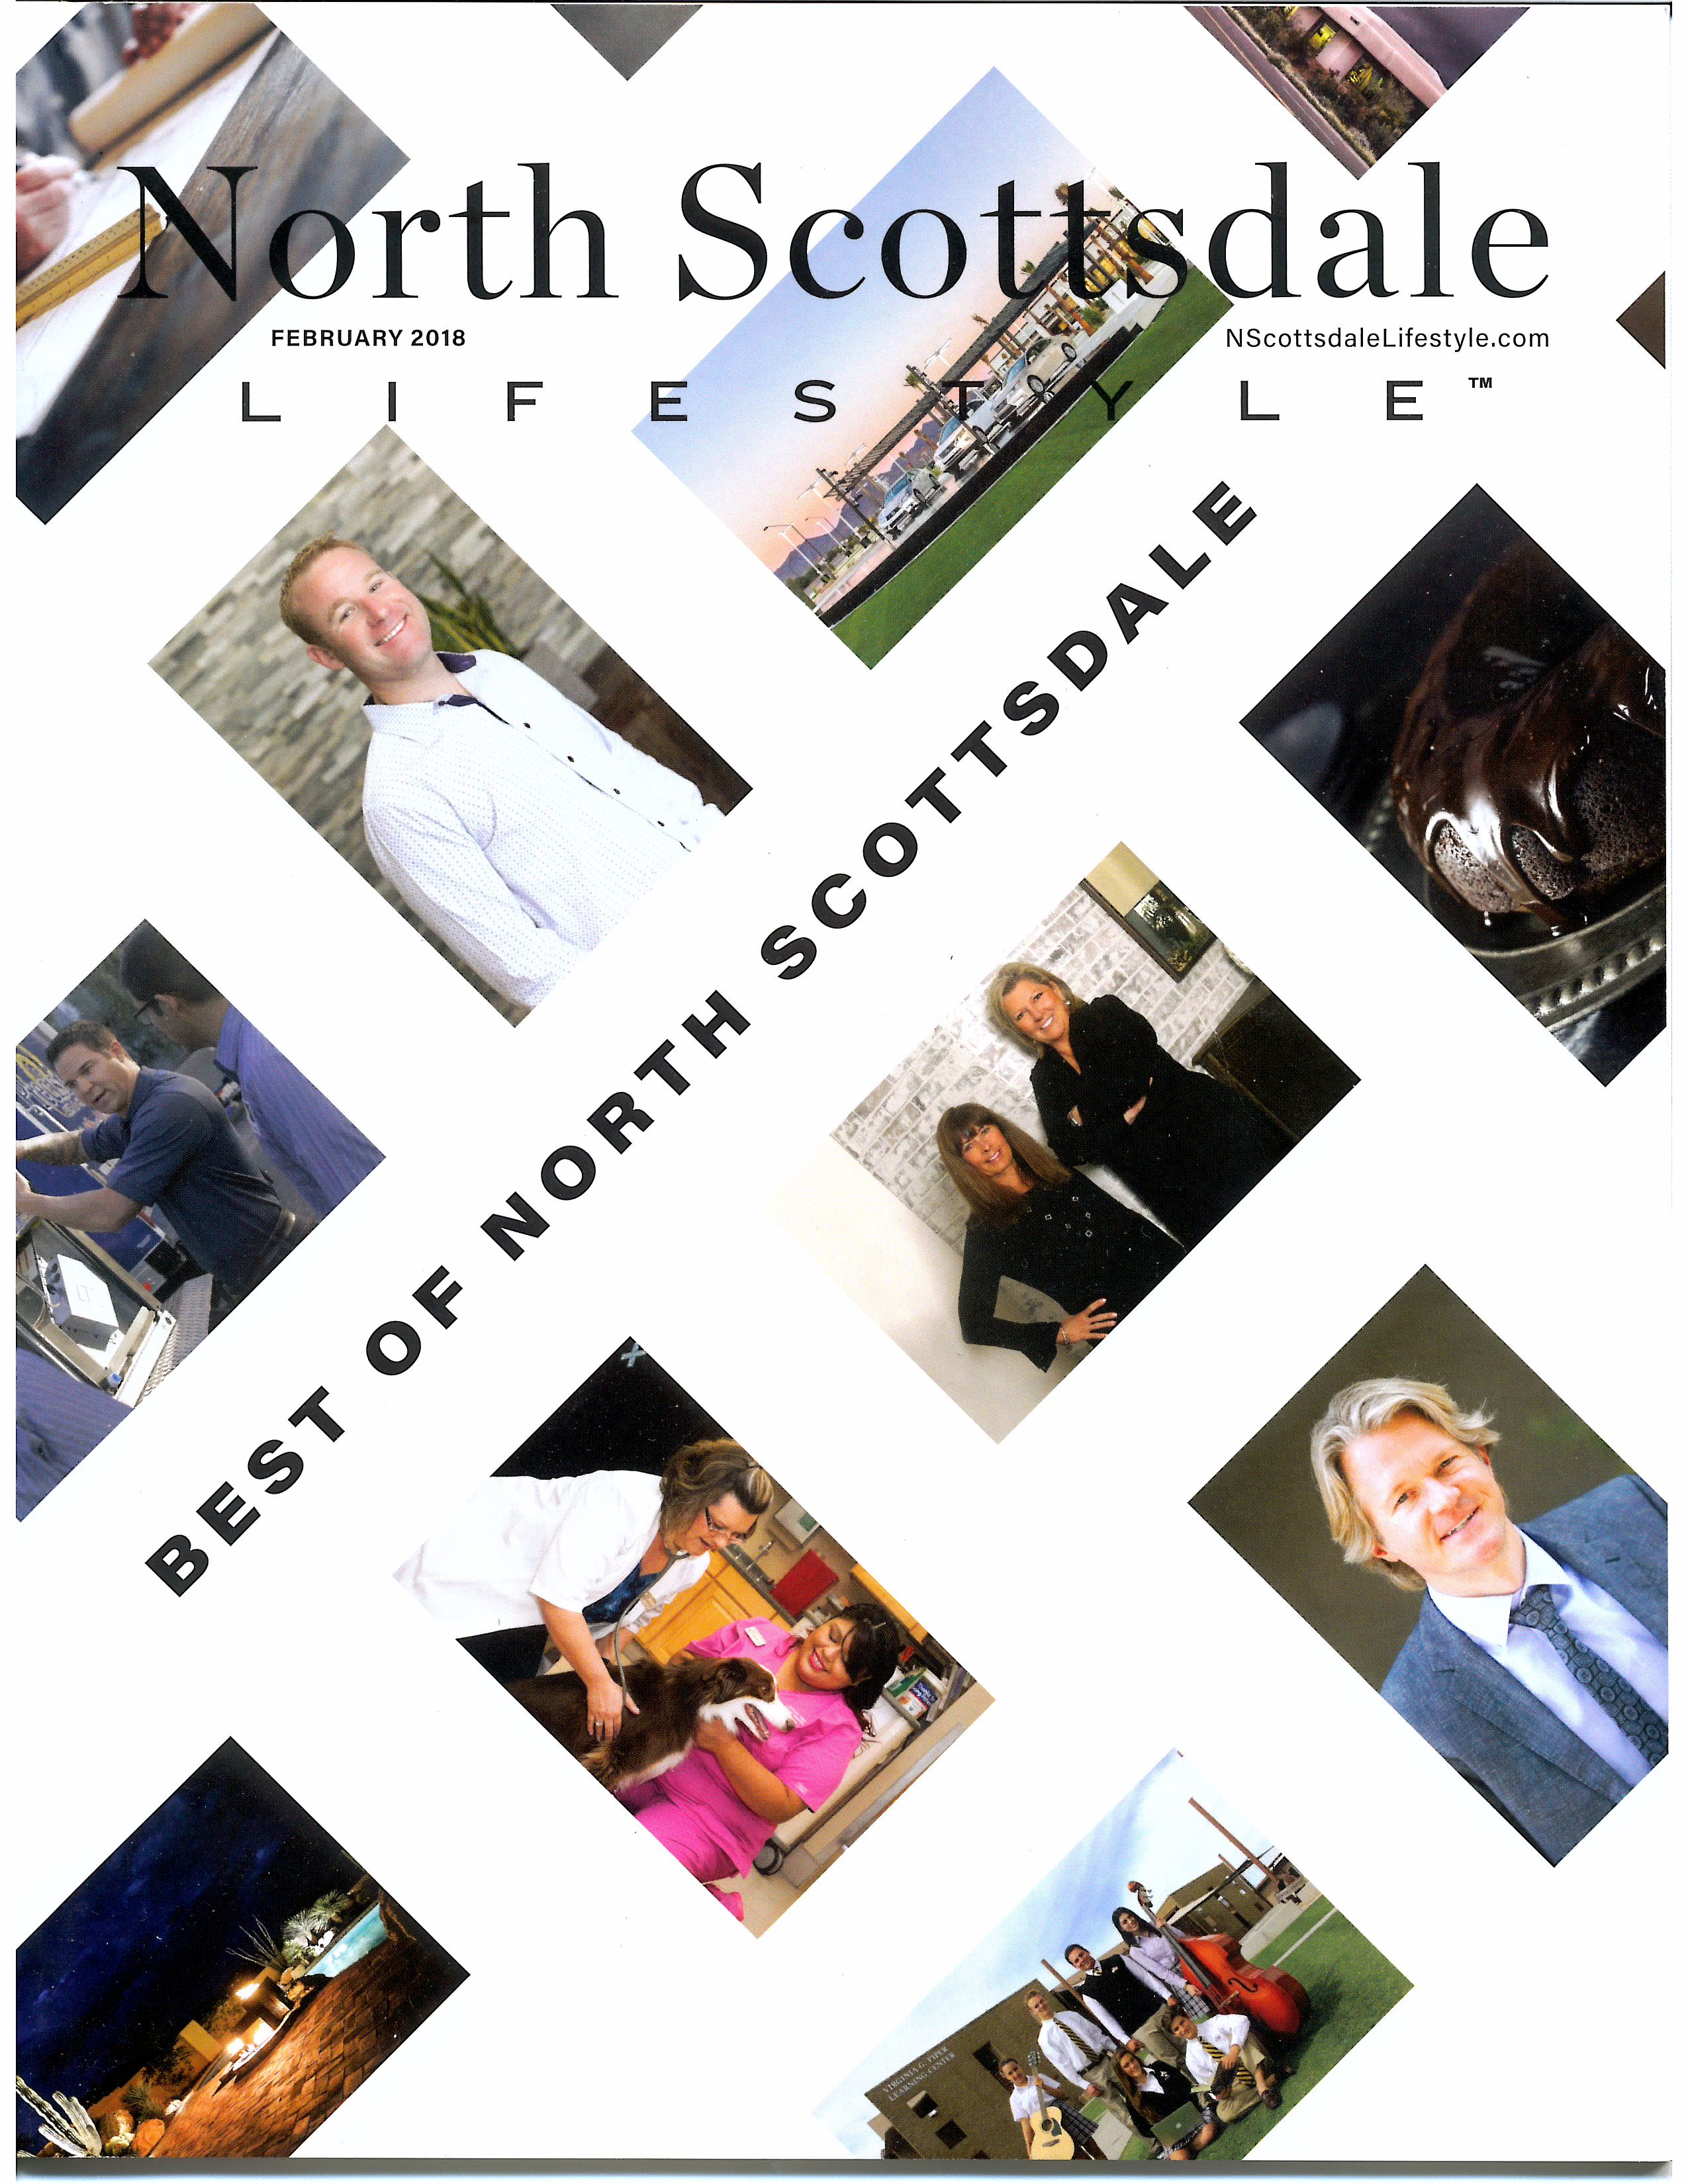 Best of North Scottsdale